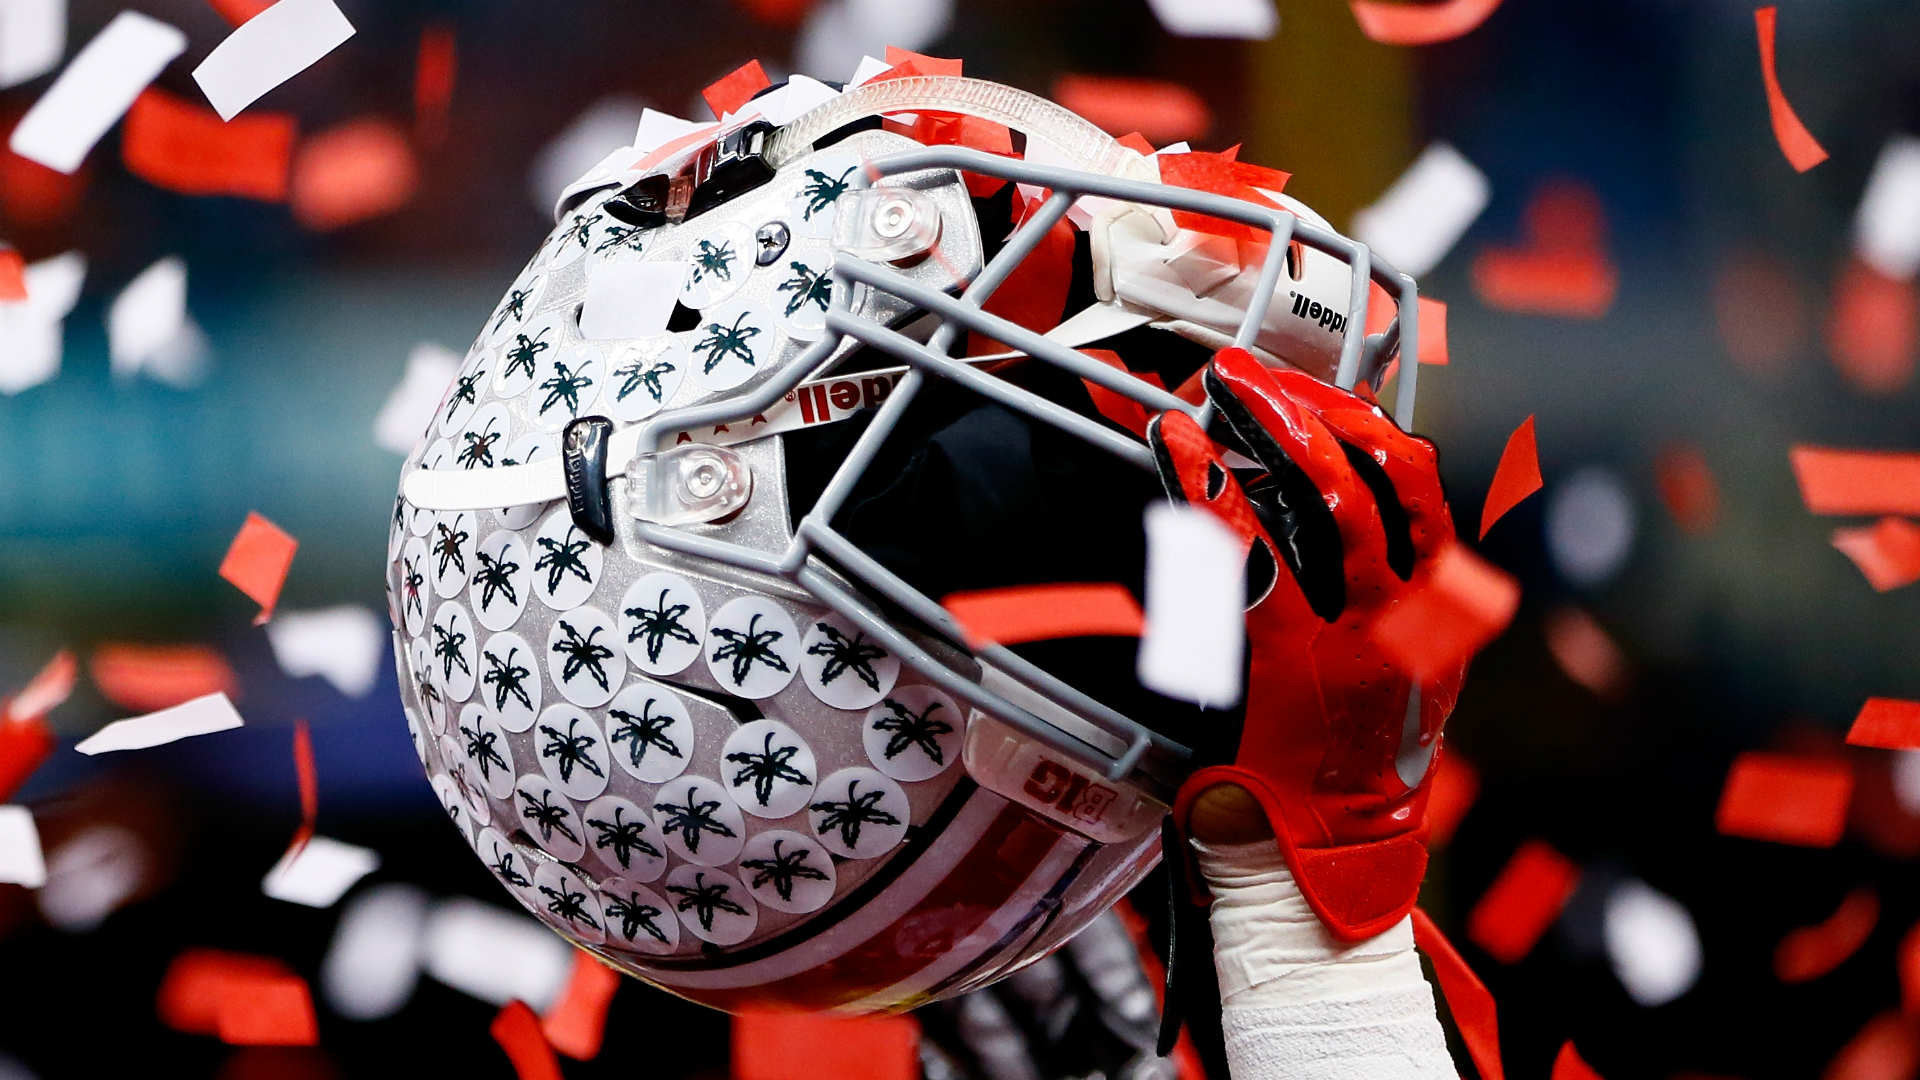 Ohio state football wallpaper 2018 64 images - Ohio state football wallpaper ...